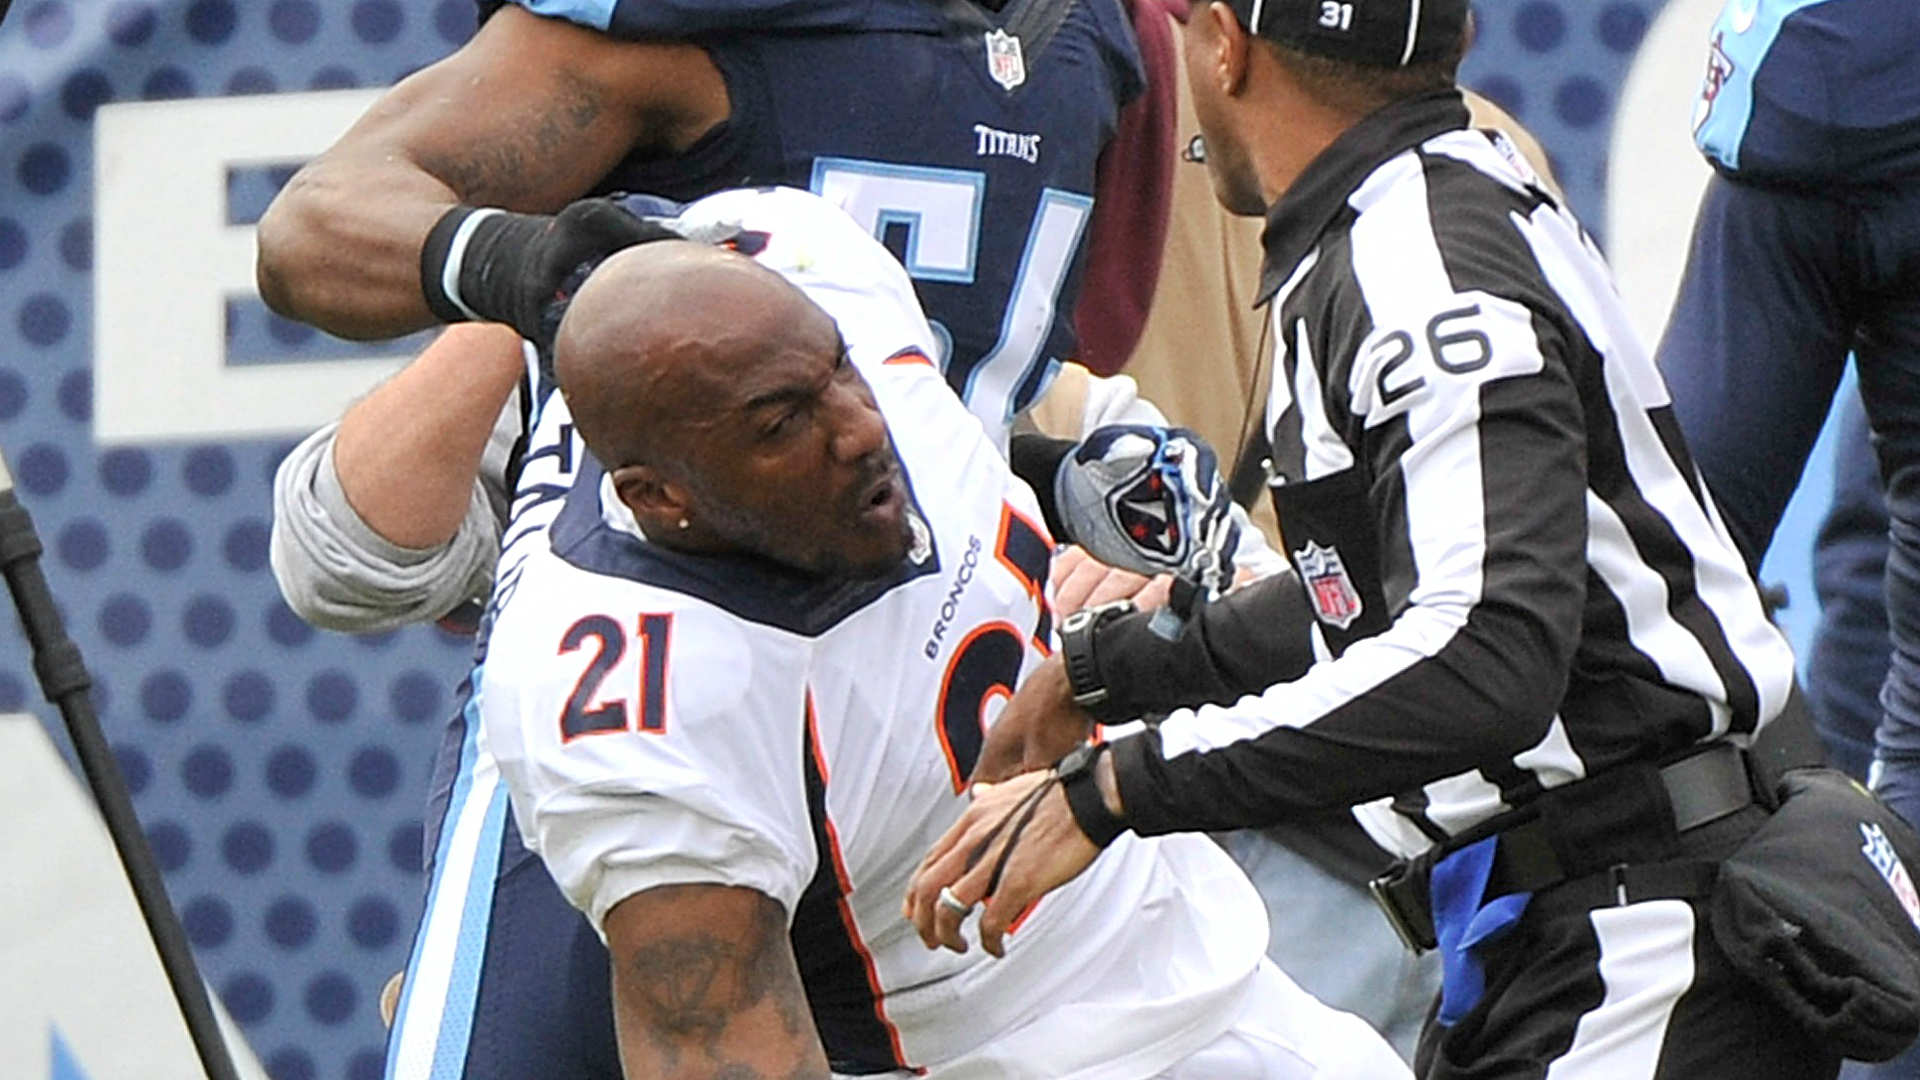 Aqib Talib vows to fight Harry Douglas as payback for dirty play